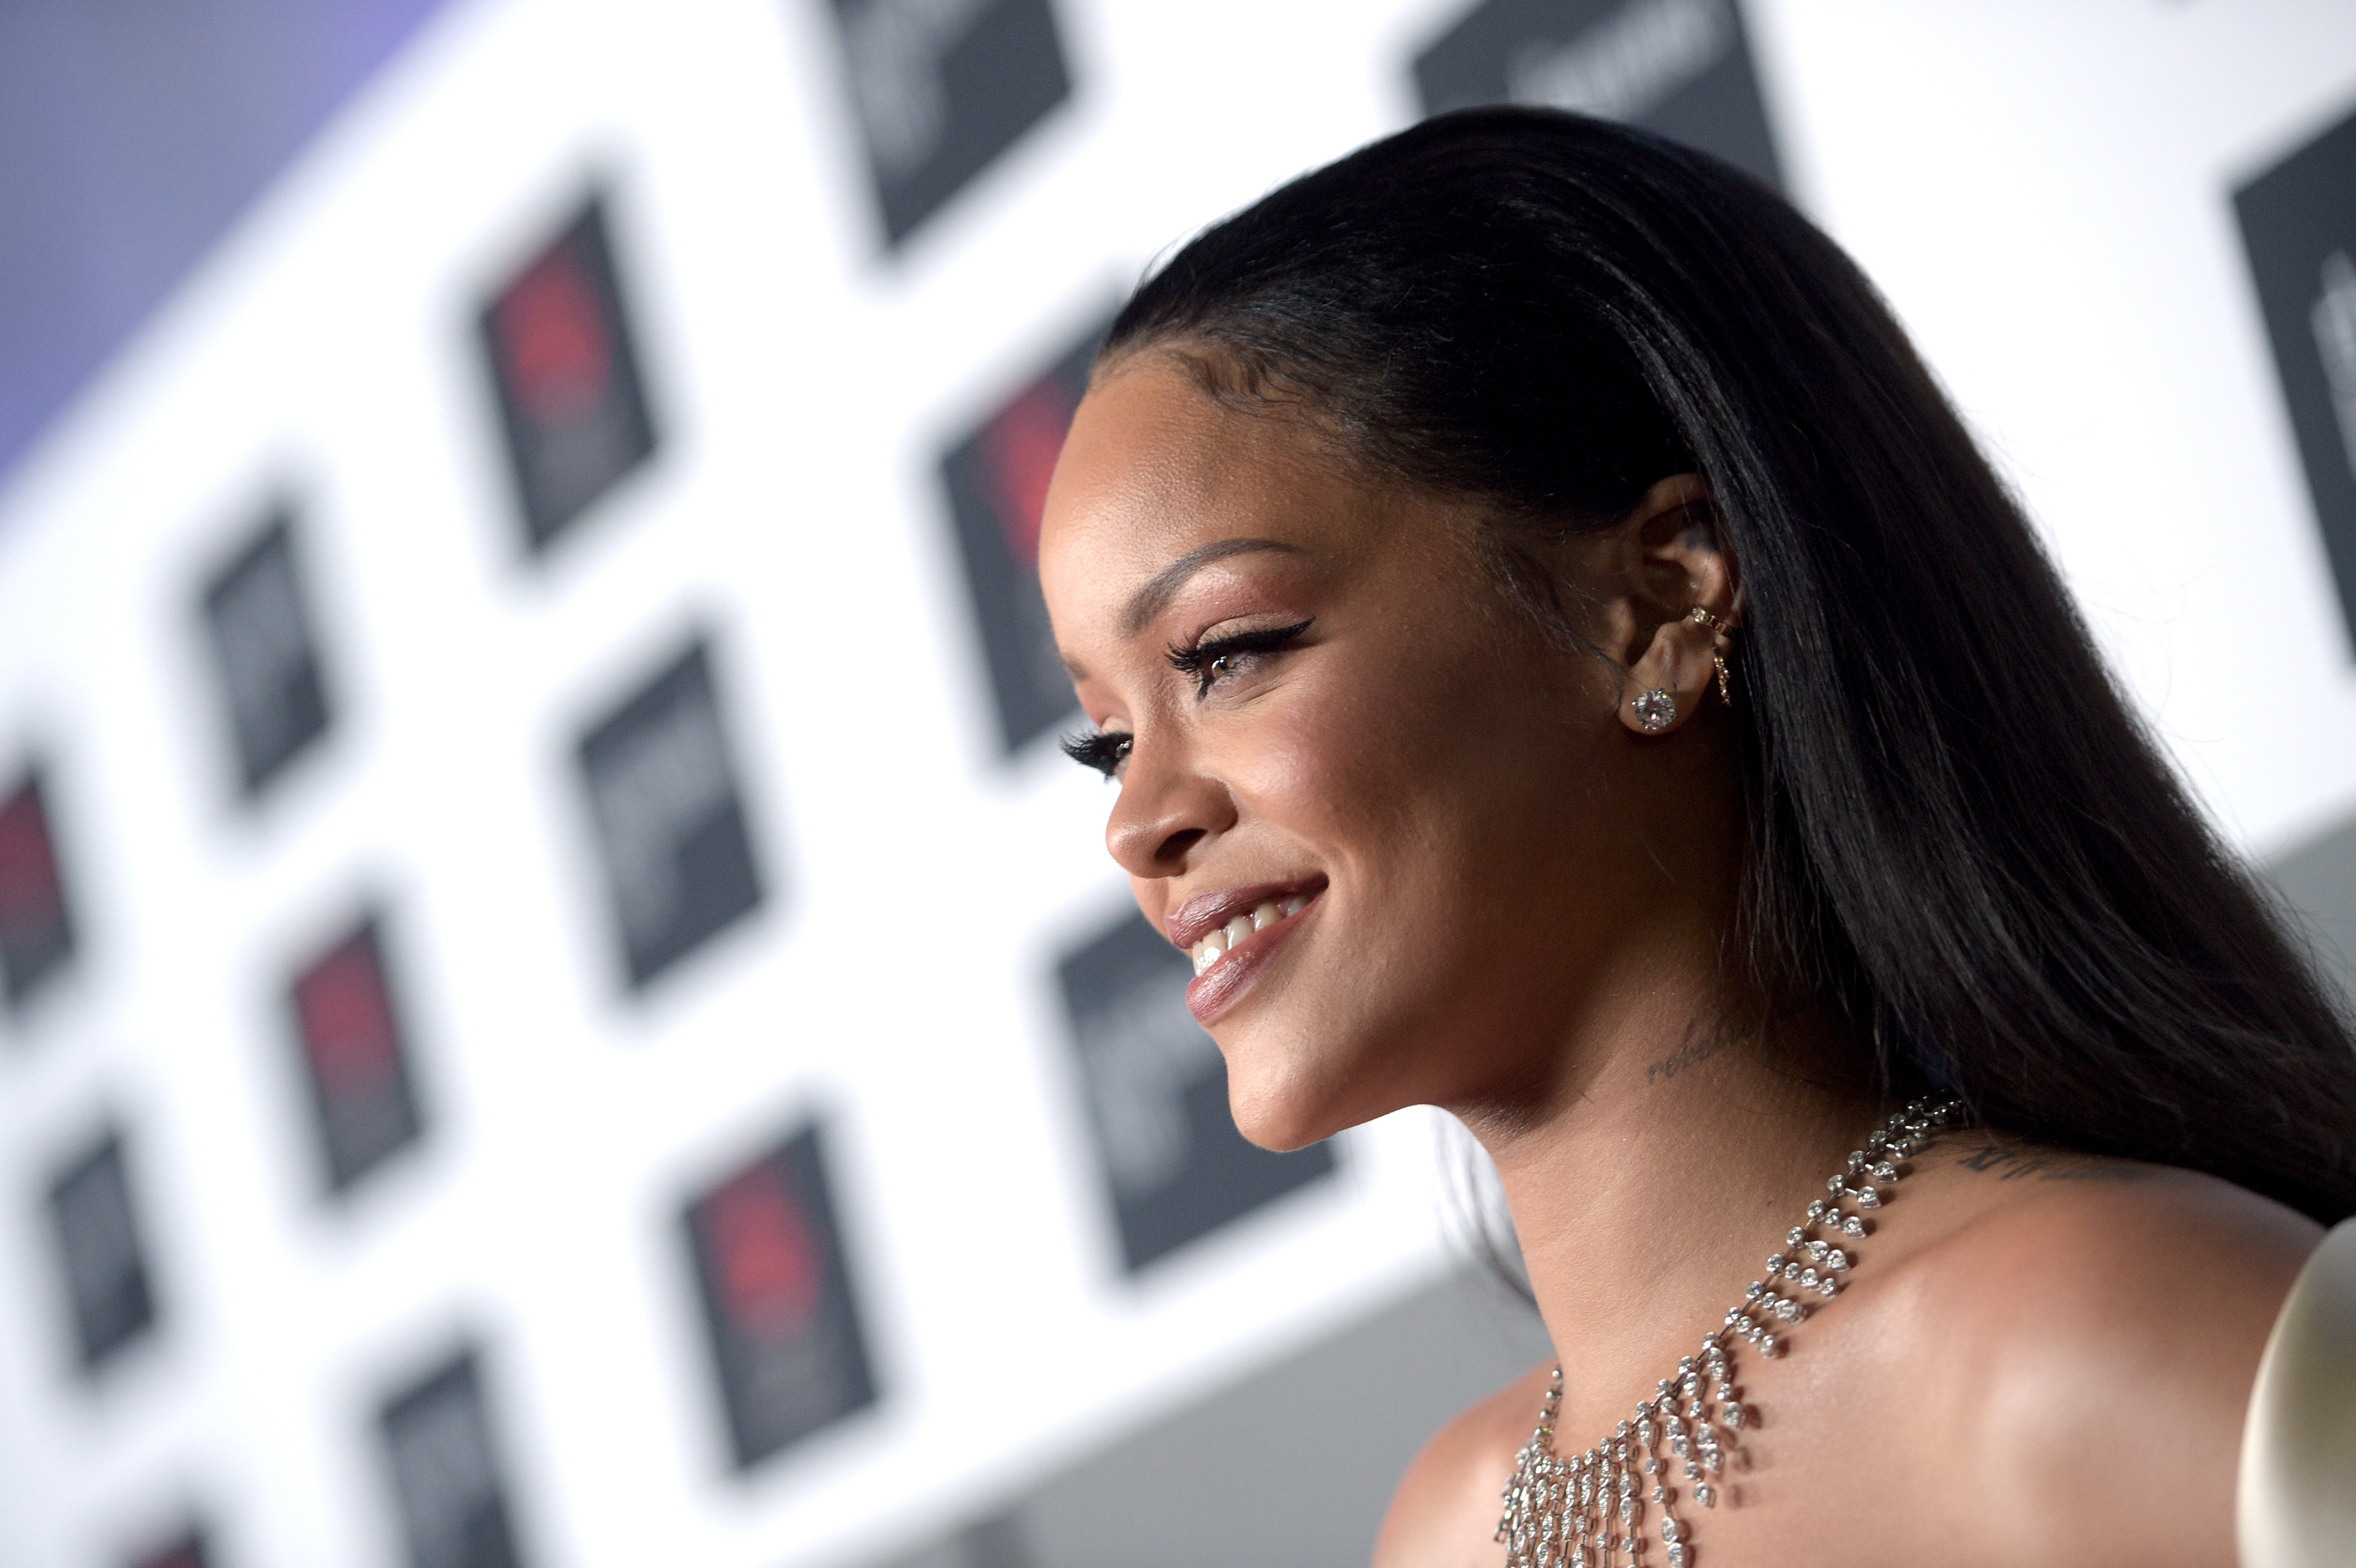 Rihanna smiling on the red carpet